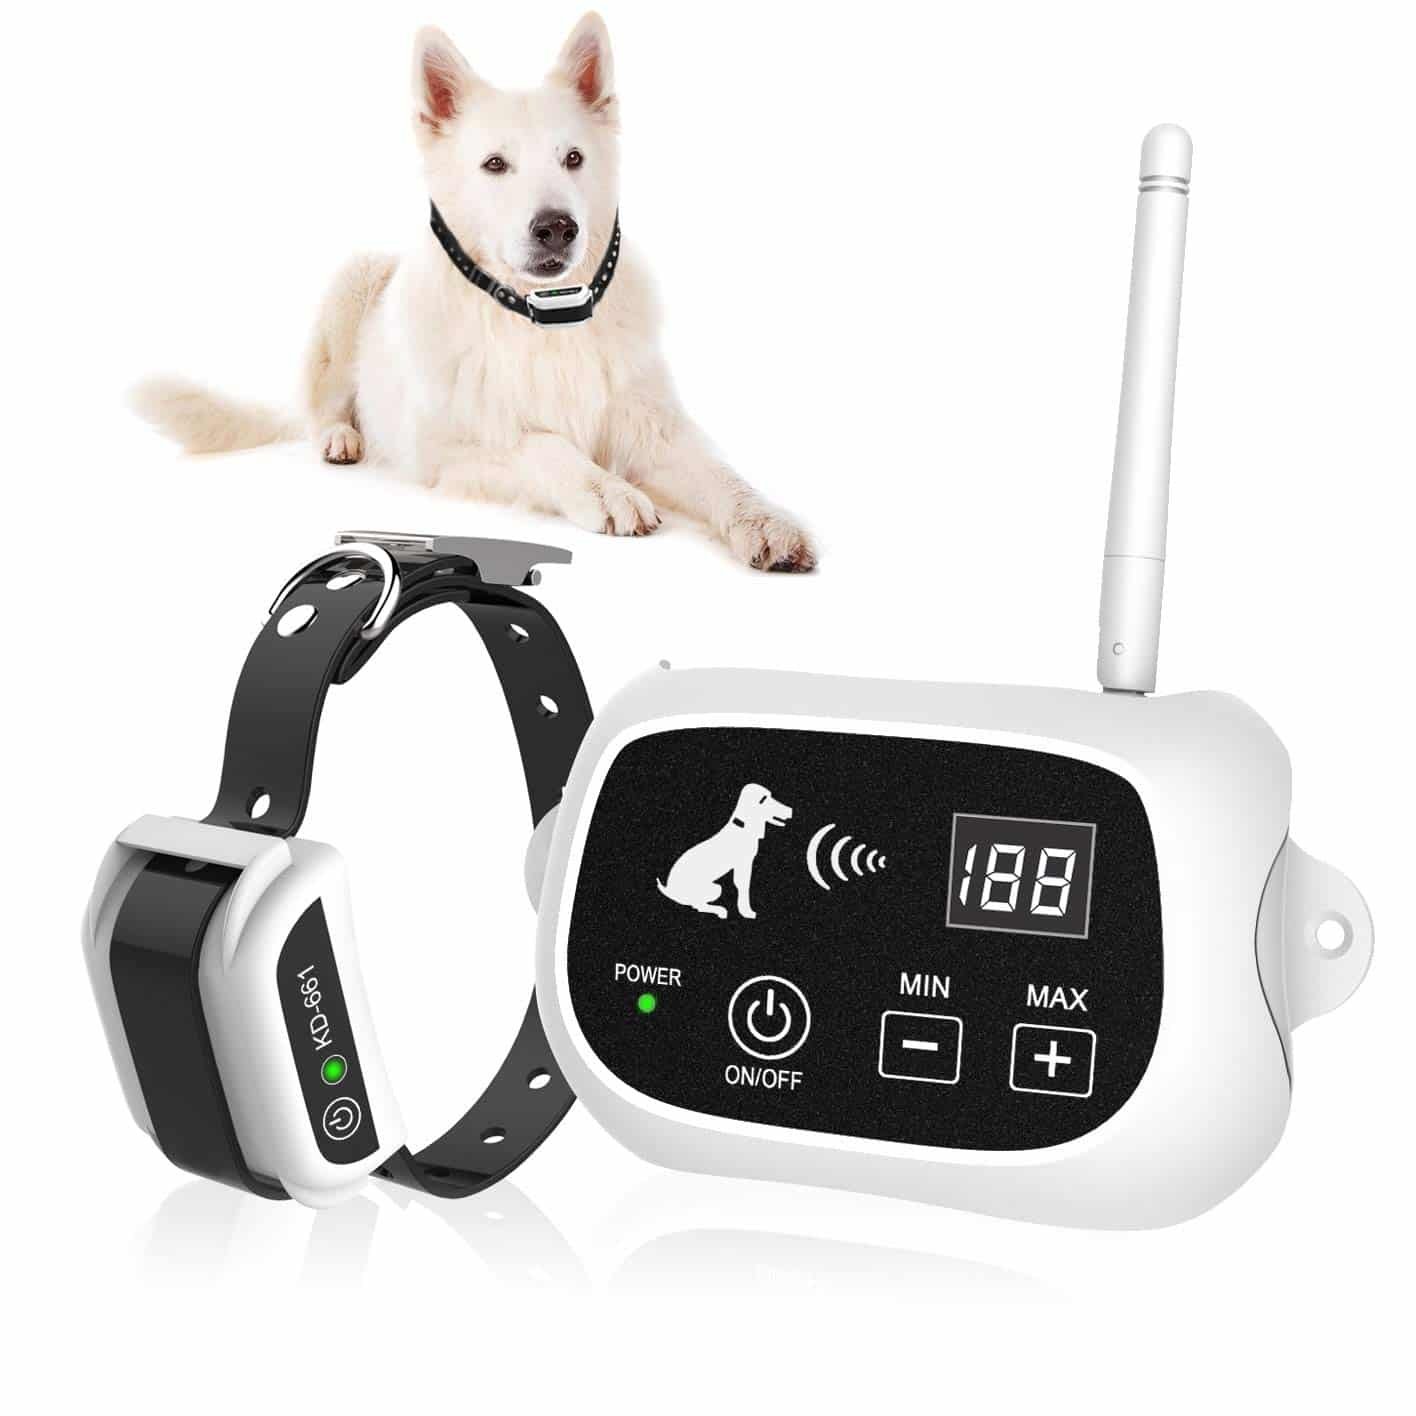 UTOPB Wireless Dog Fence System